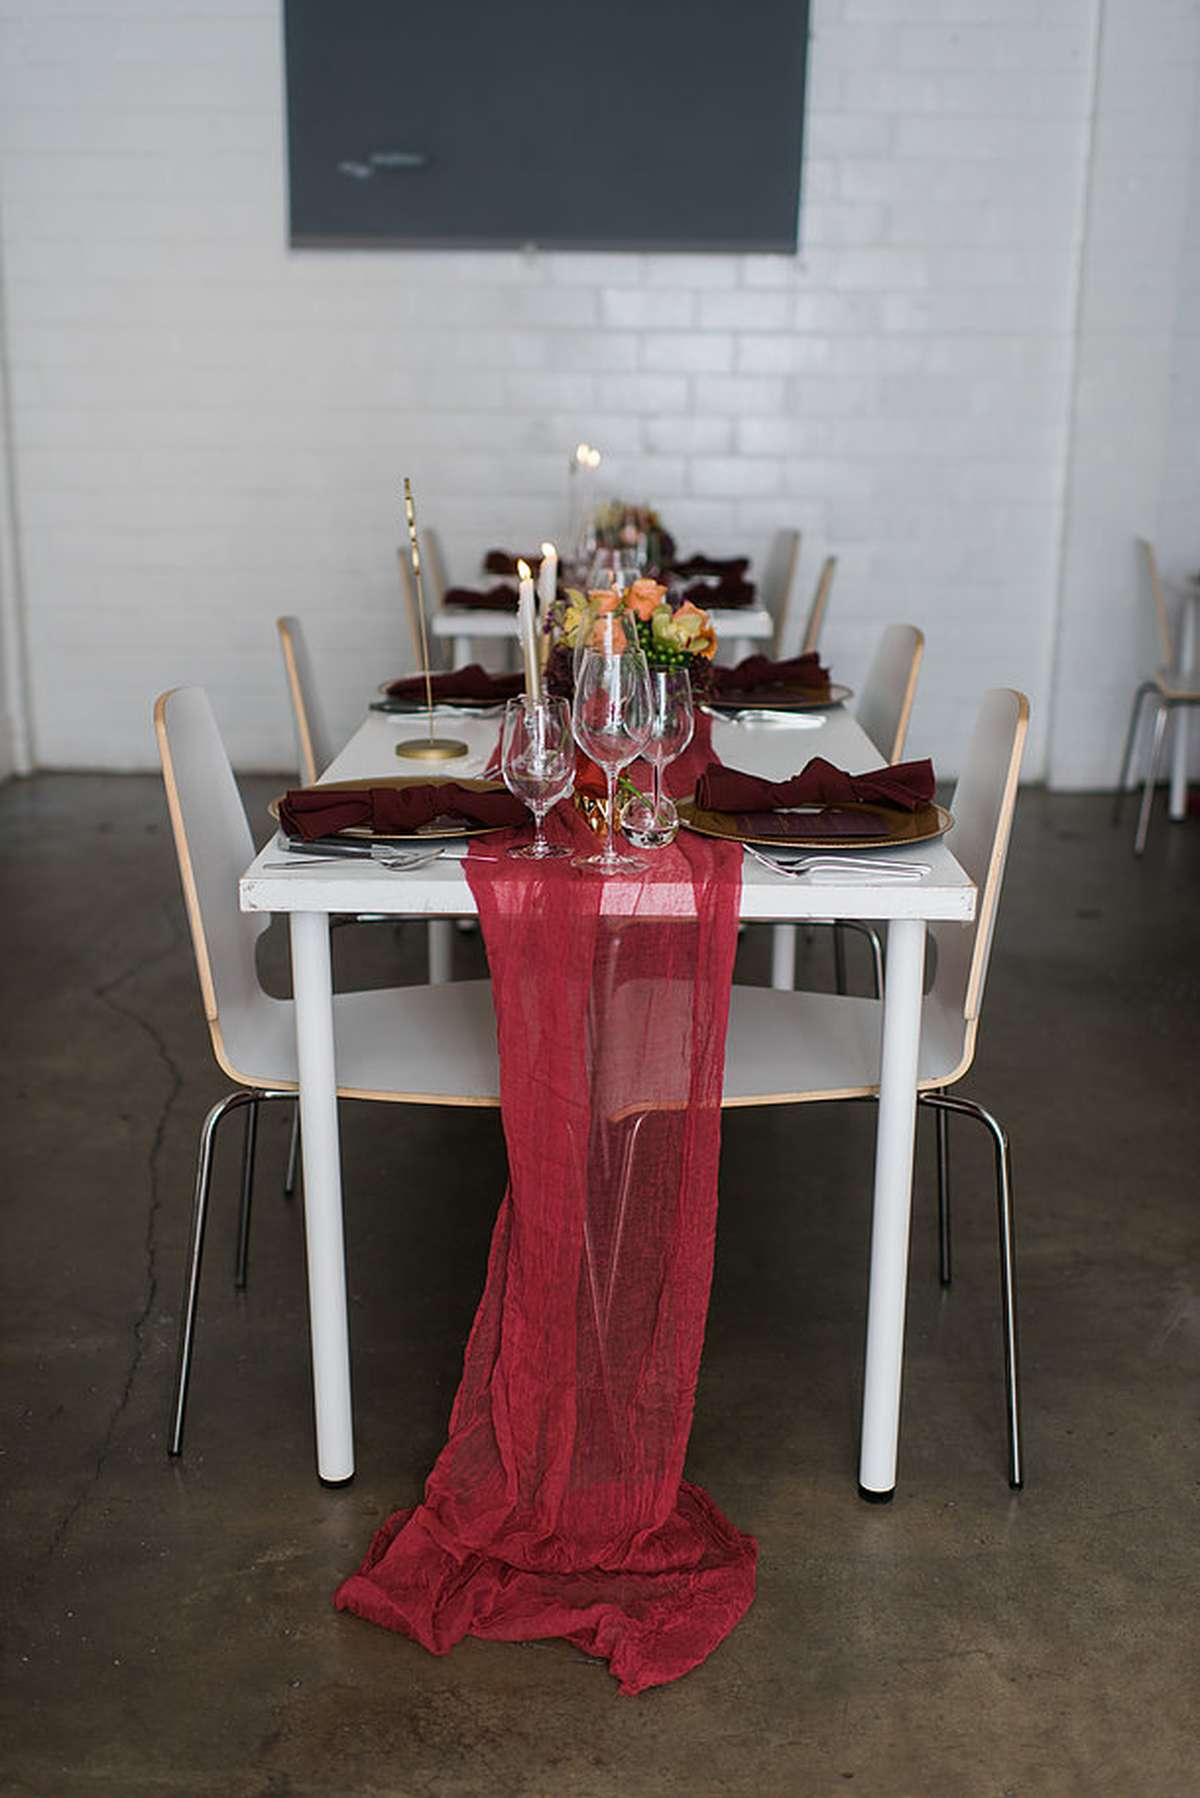 long table runner with red and maroon table decorations